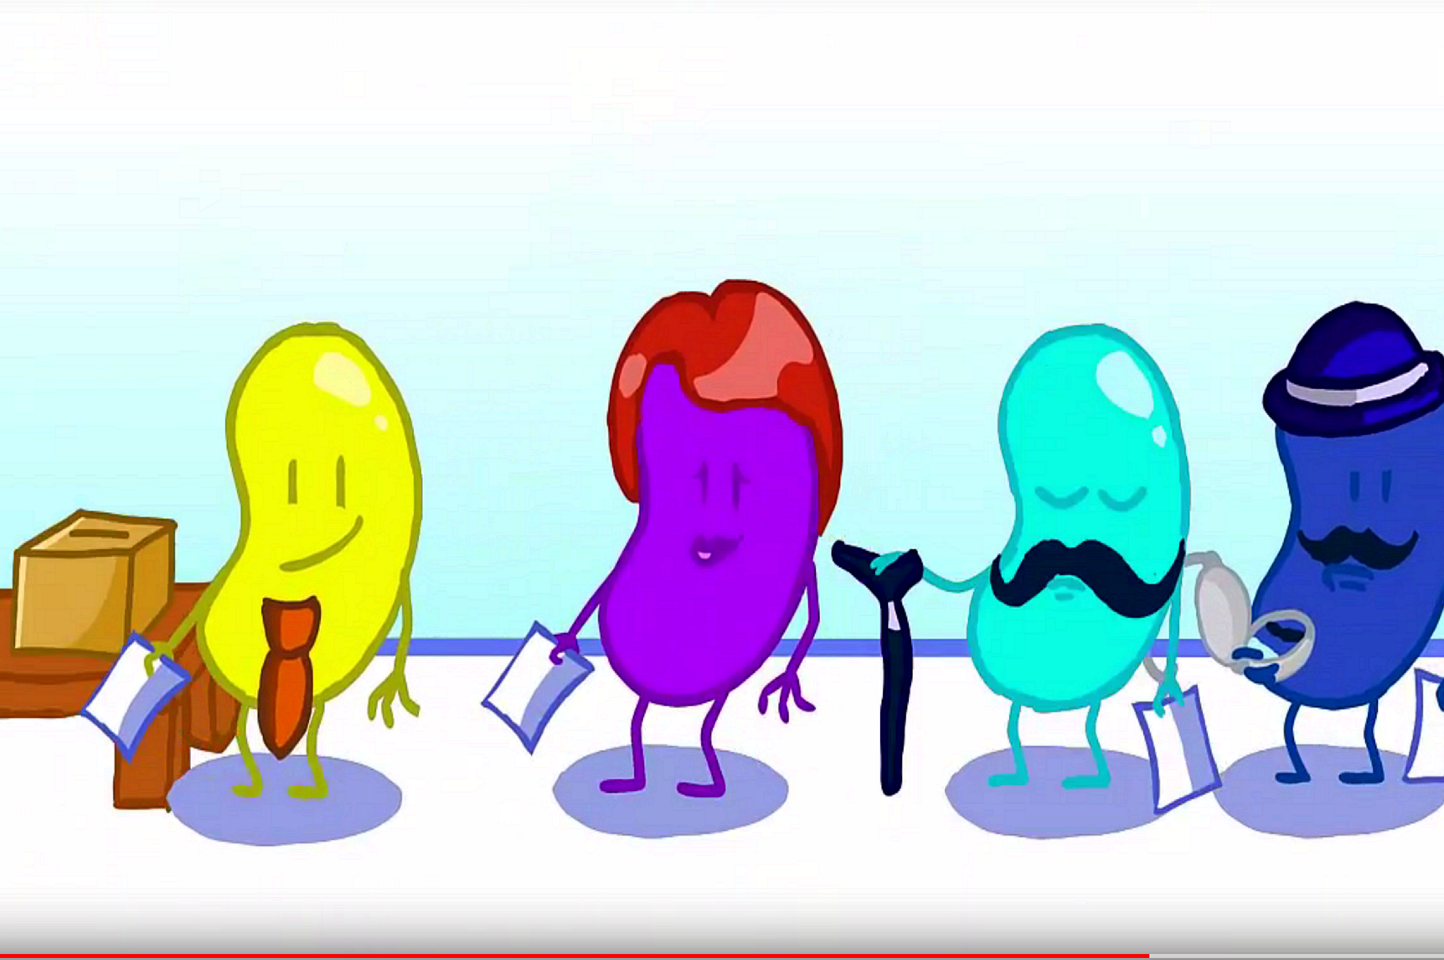 Animated view of jellybeans explaining the difference between Parliament and government